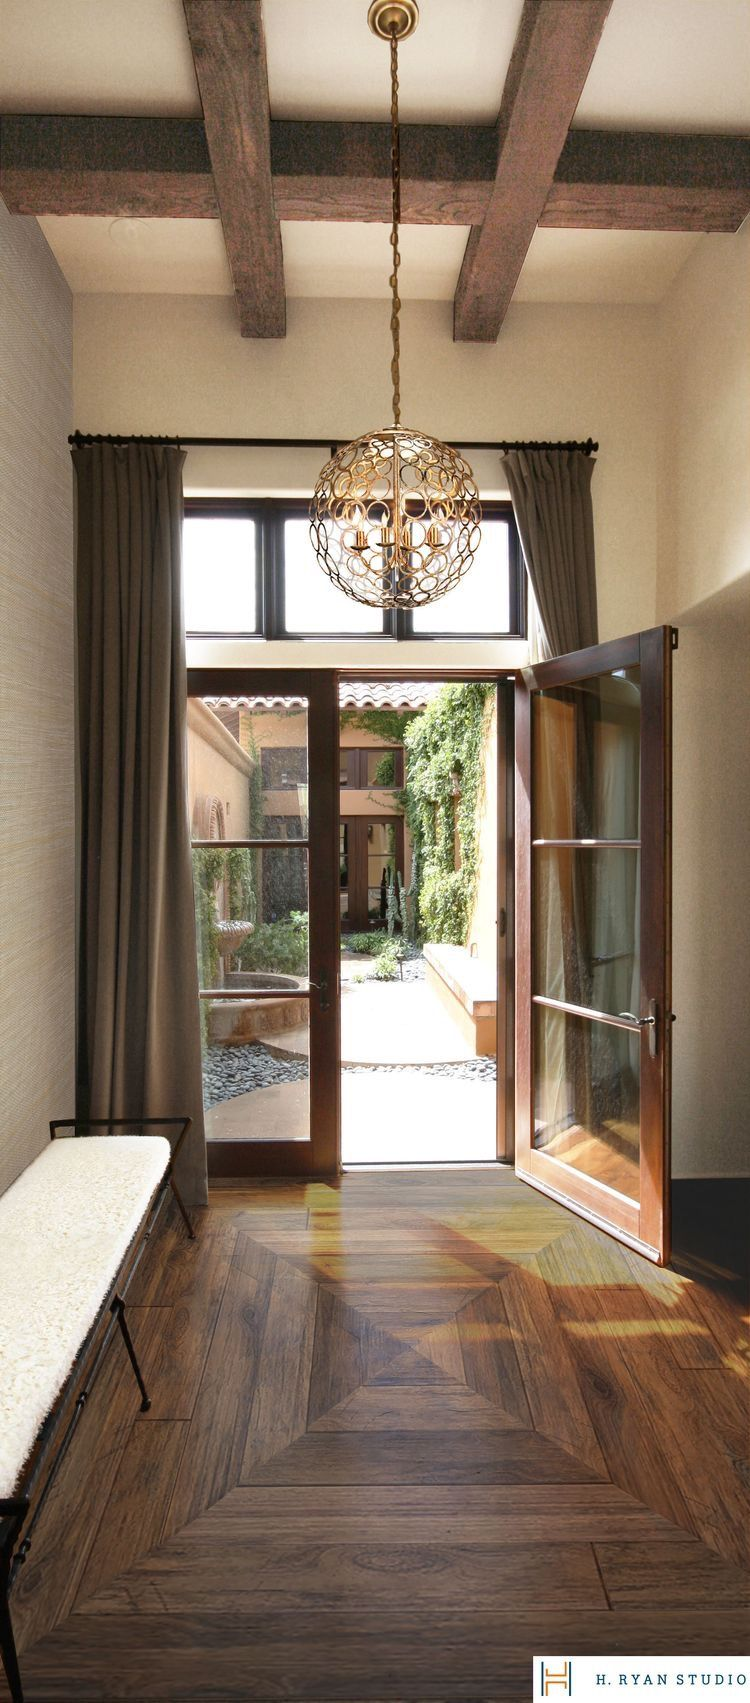 Pin by Ri W. on HOUSES/MANSIONS | Pinterest | Foyers, Flooring ideas ...